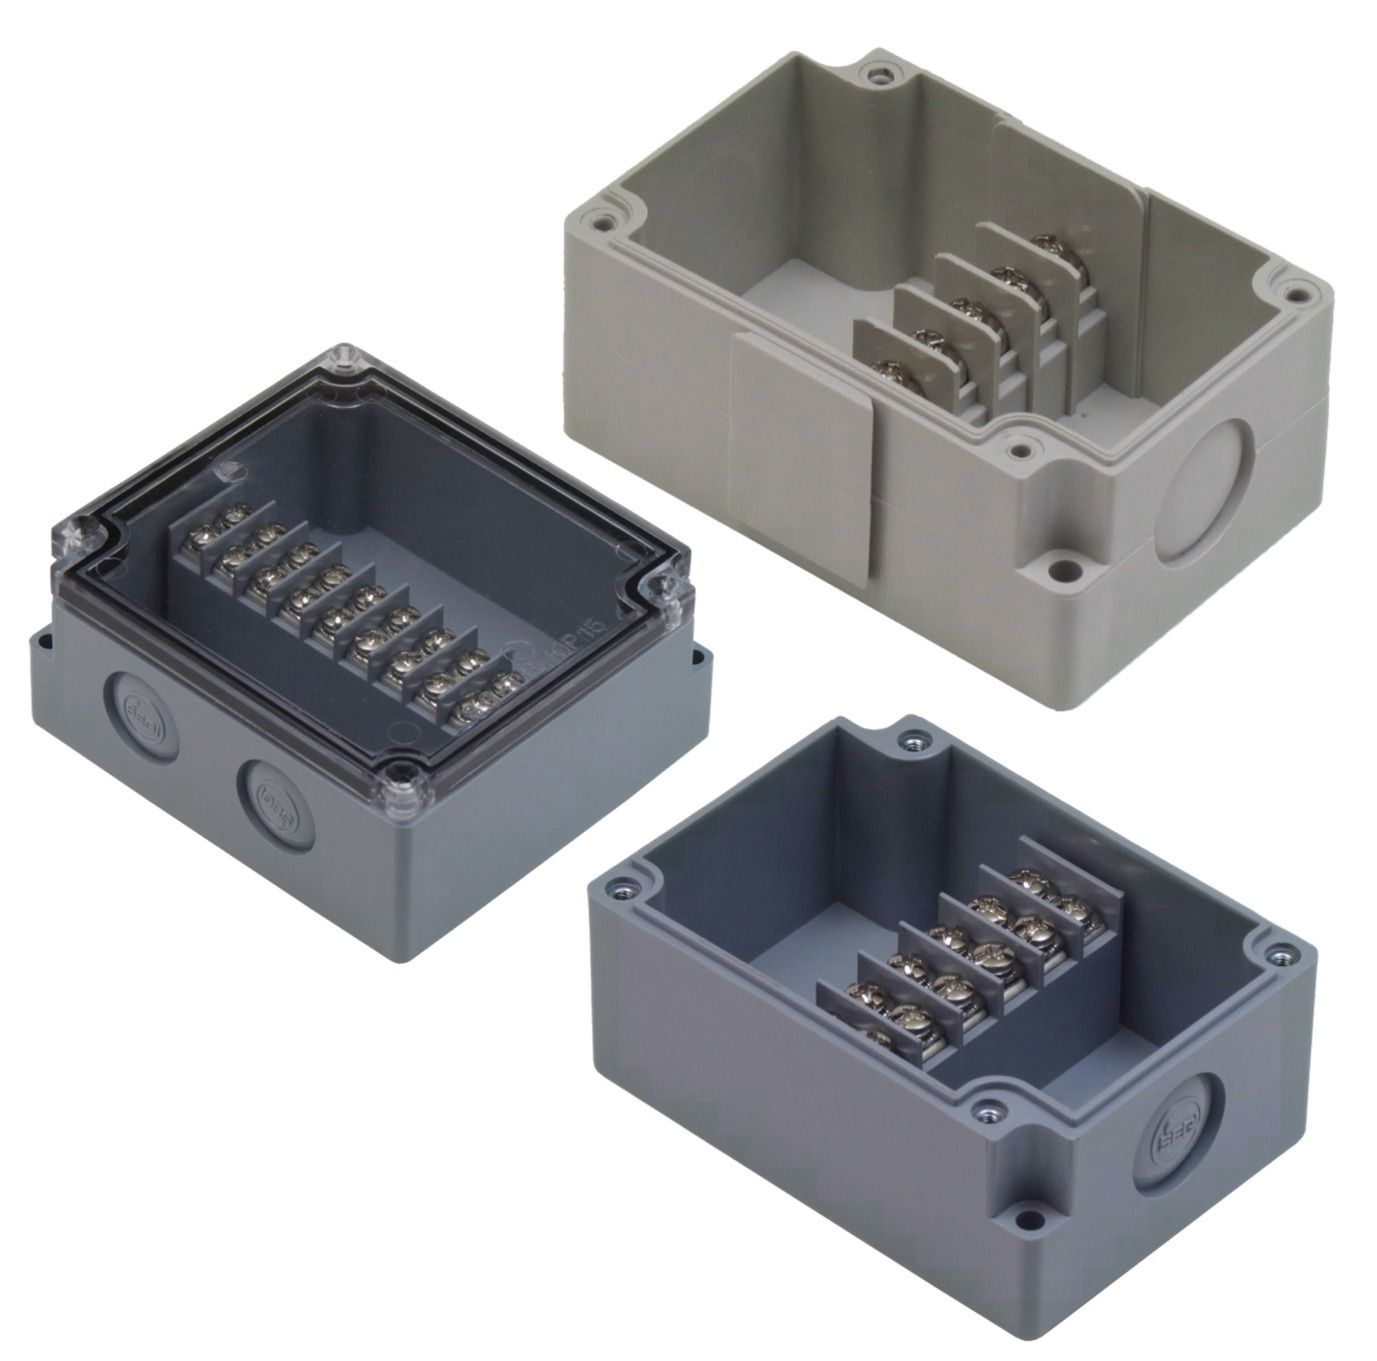 Litecycle Junction Box Enclosures Litecycle Terminal Enclosures Are Available In Aluminum Or Abs Plastic And Feature An Integr Junction Boxes Enclosures Box